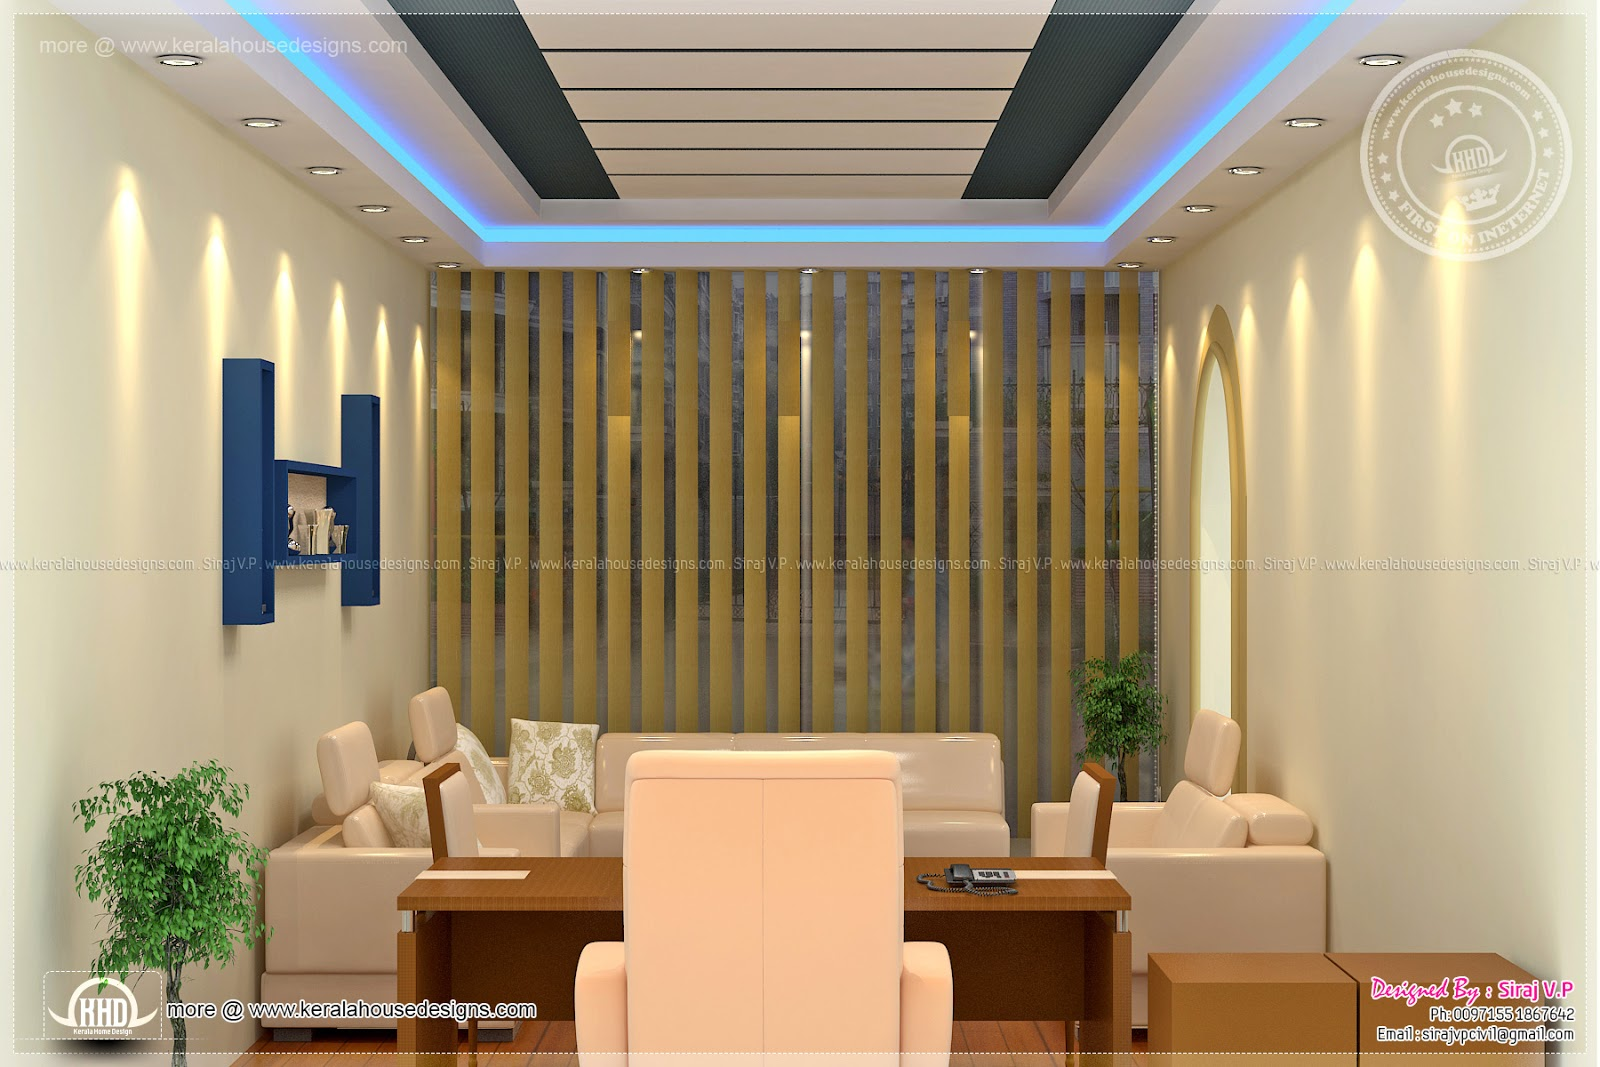 Home office interior design by siraj v p home kerala plans for An interior design